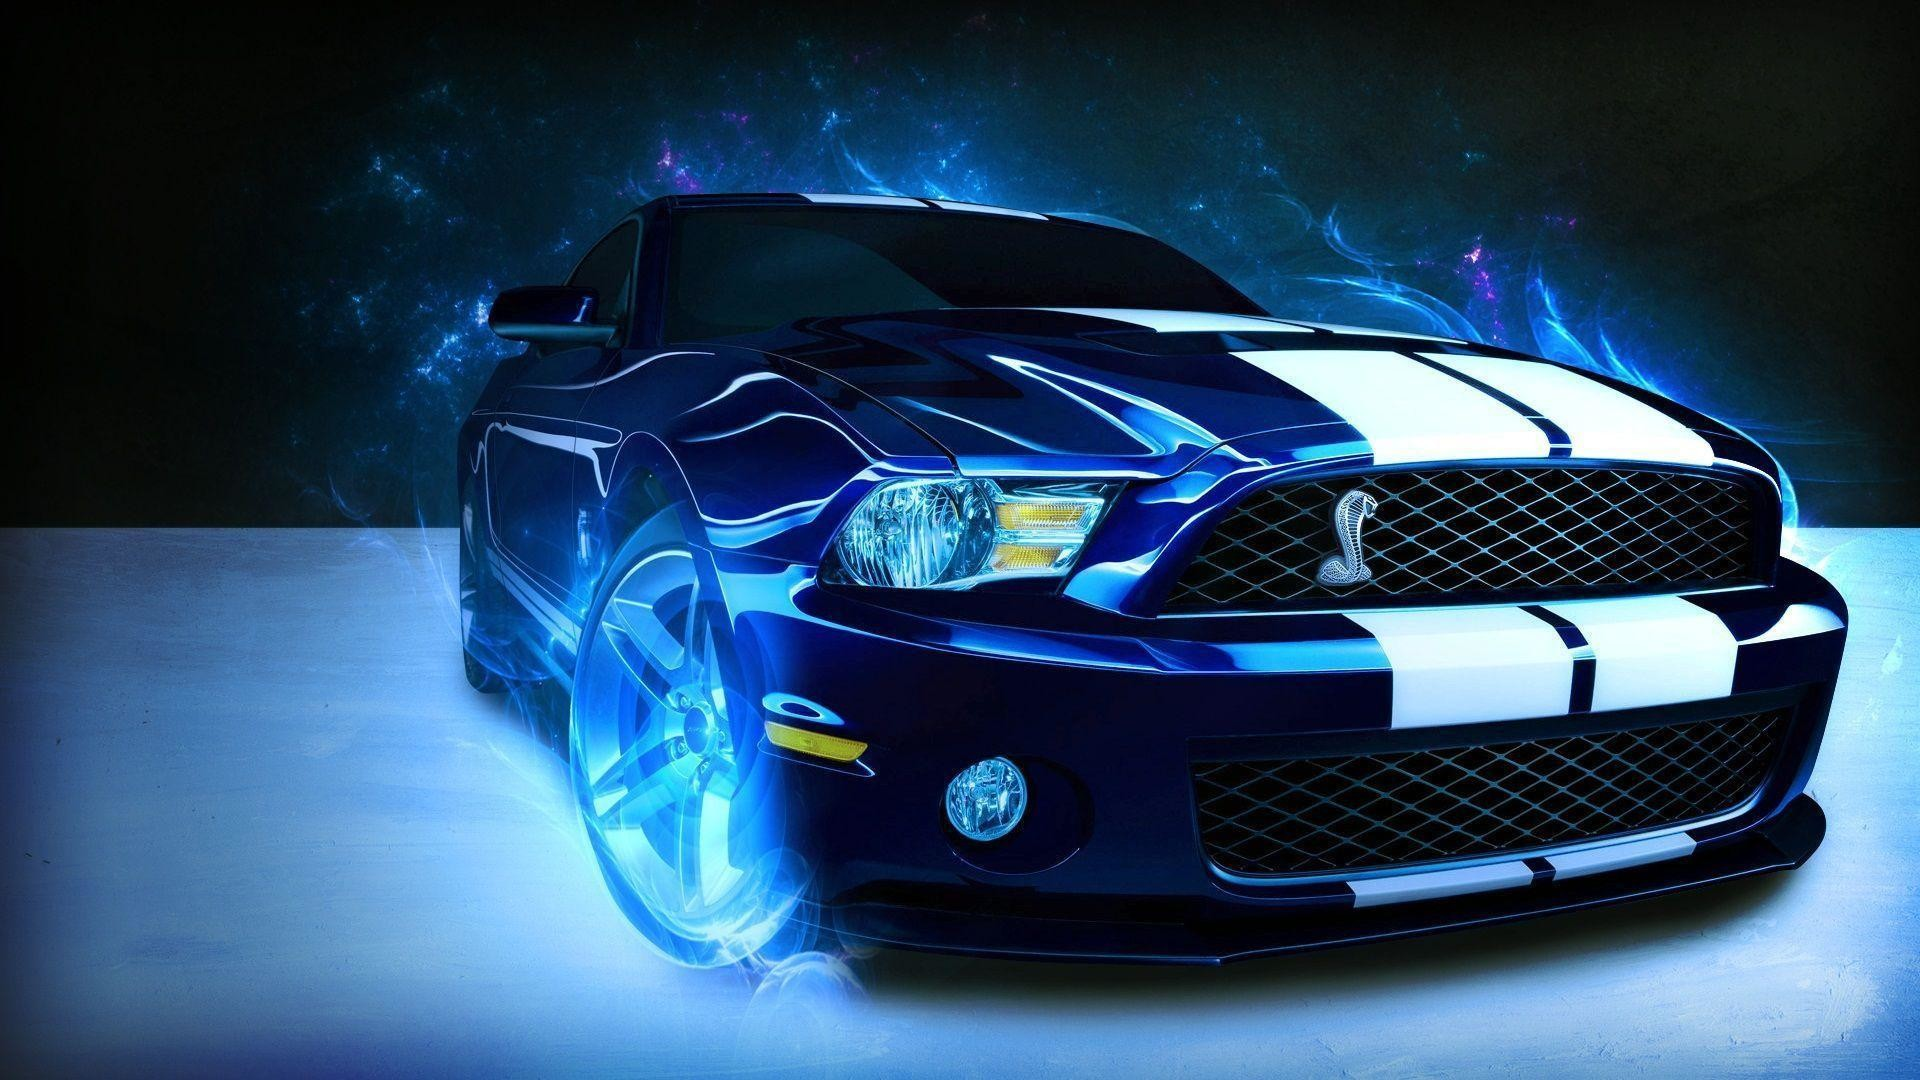 1920x1080 Wallpapers For Ford Mustang Wallpapers. mustang logo wallpapers wallpaper  cave